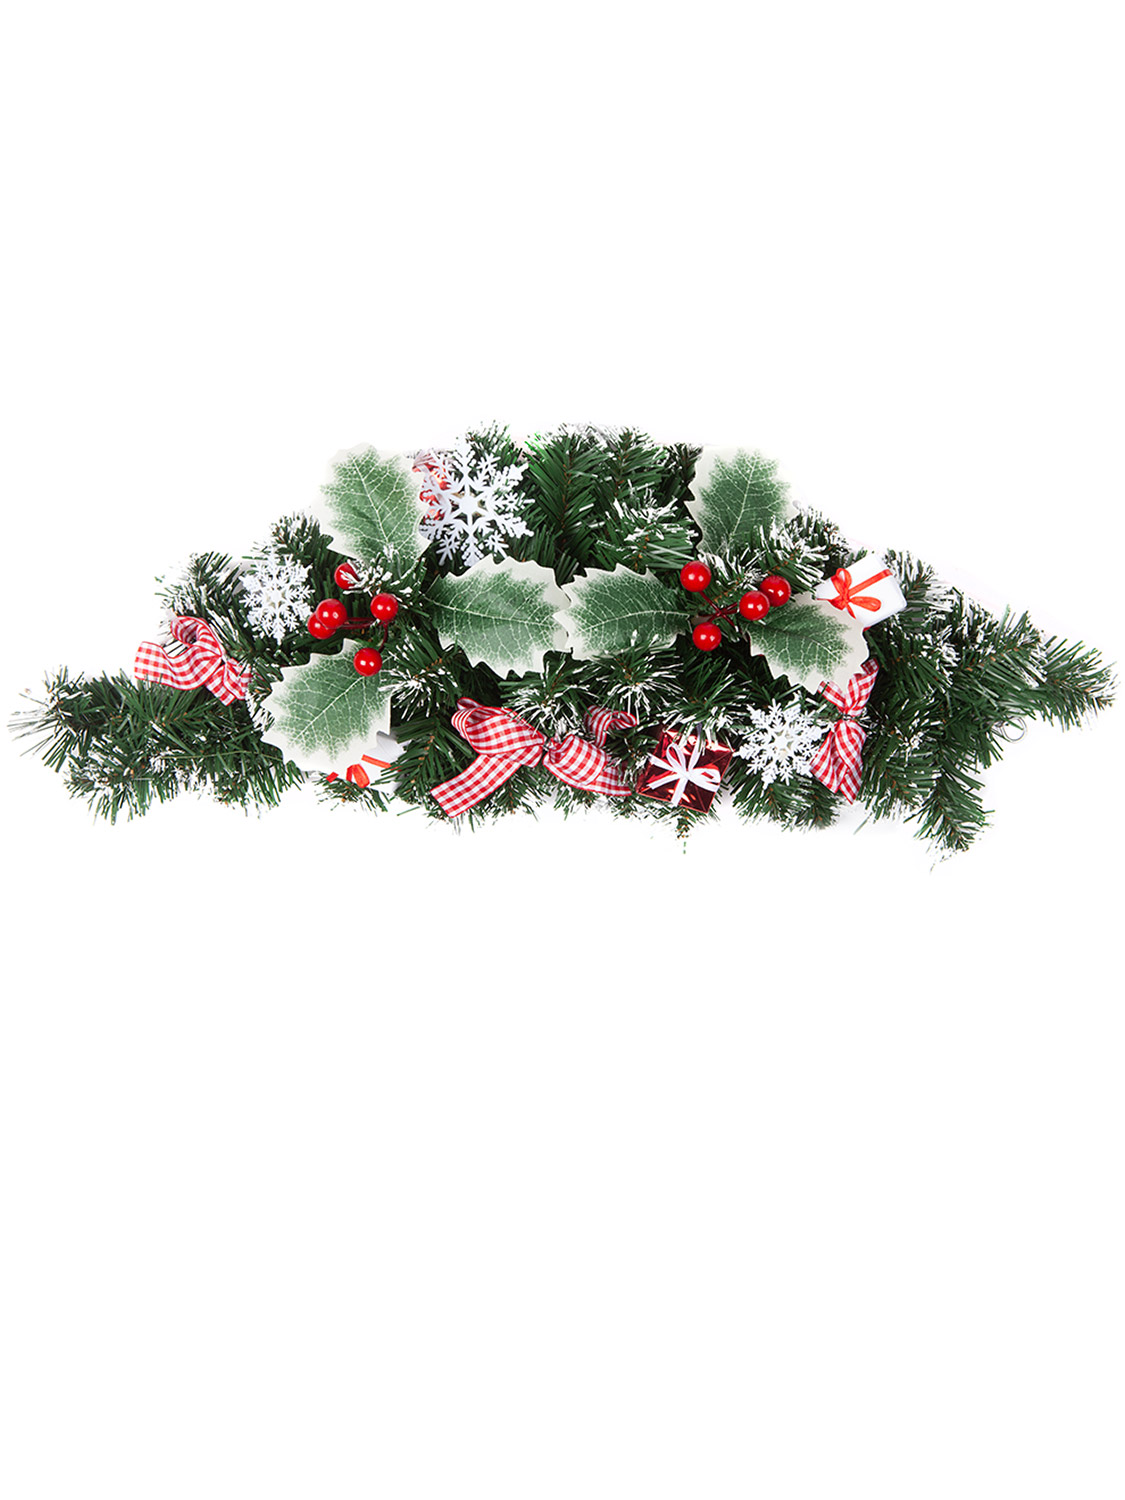 Christmas-Nordic-Wreath-Garland-Swag-Xmas-Scandi-Festive-Door-Mantle-Decoration thumbnail 14